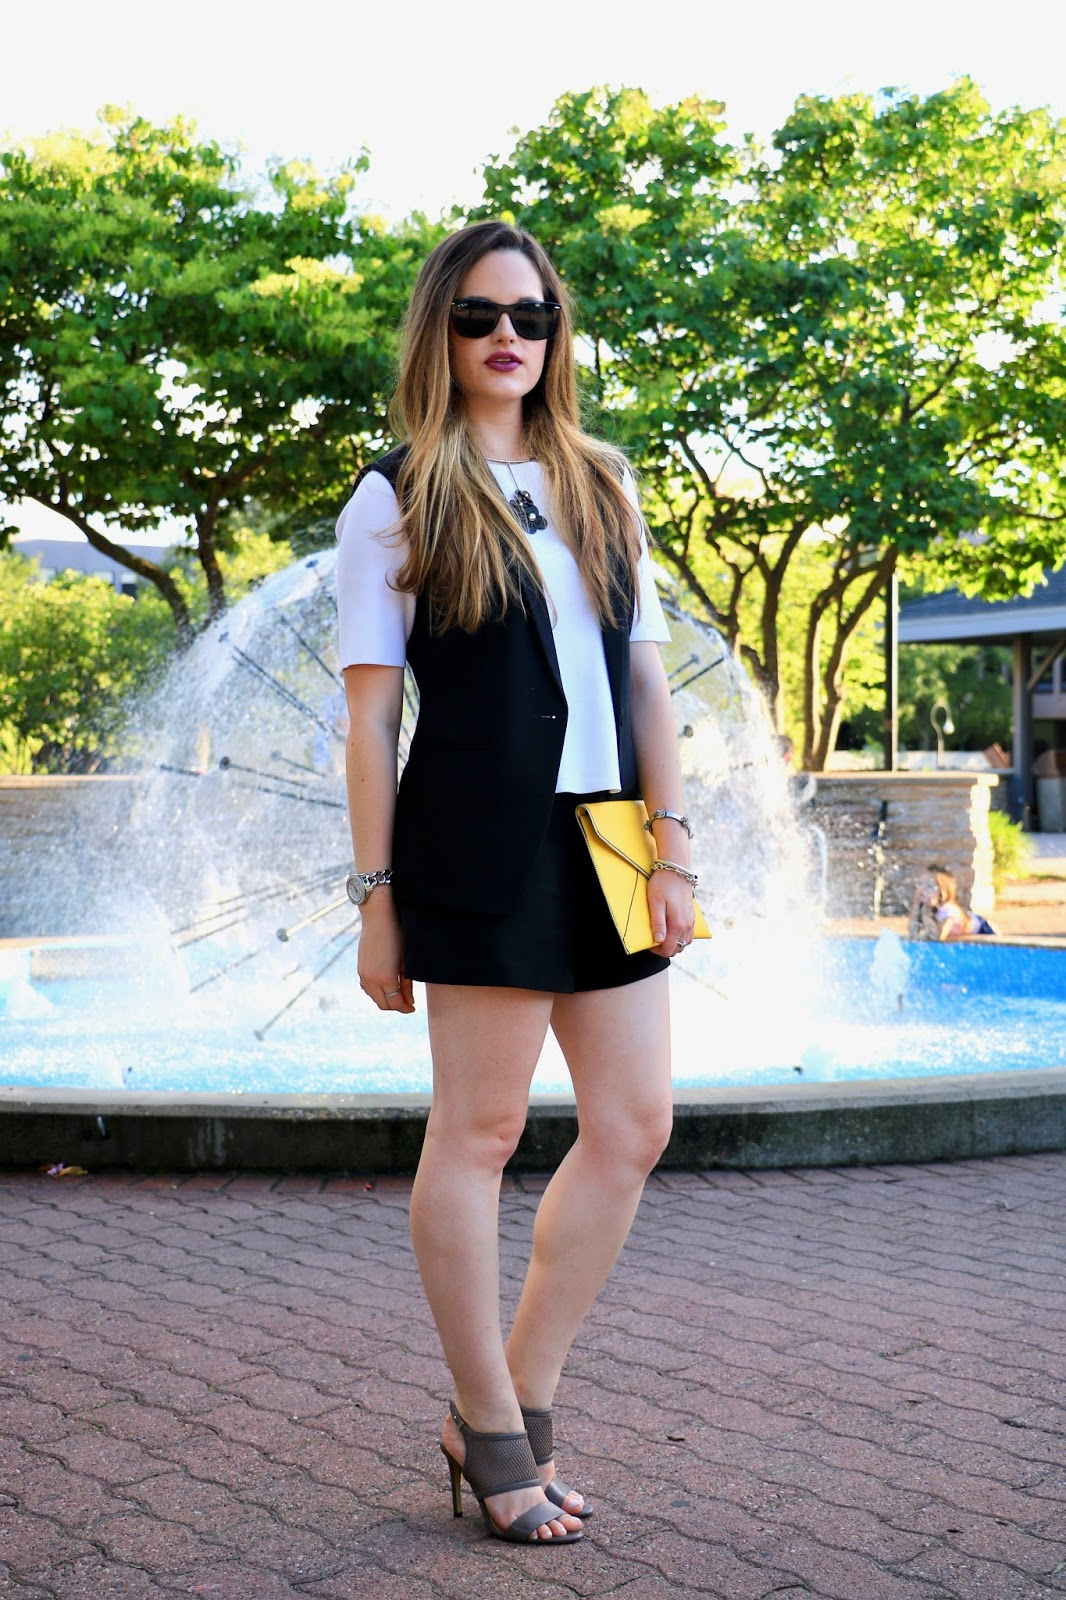 NYC fashion blogger Kathleen Harper of Kat's Fashion Fix summer street style